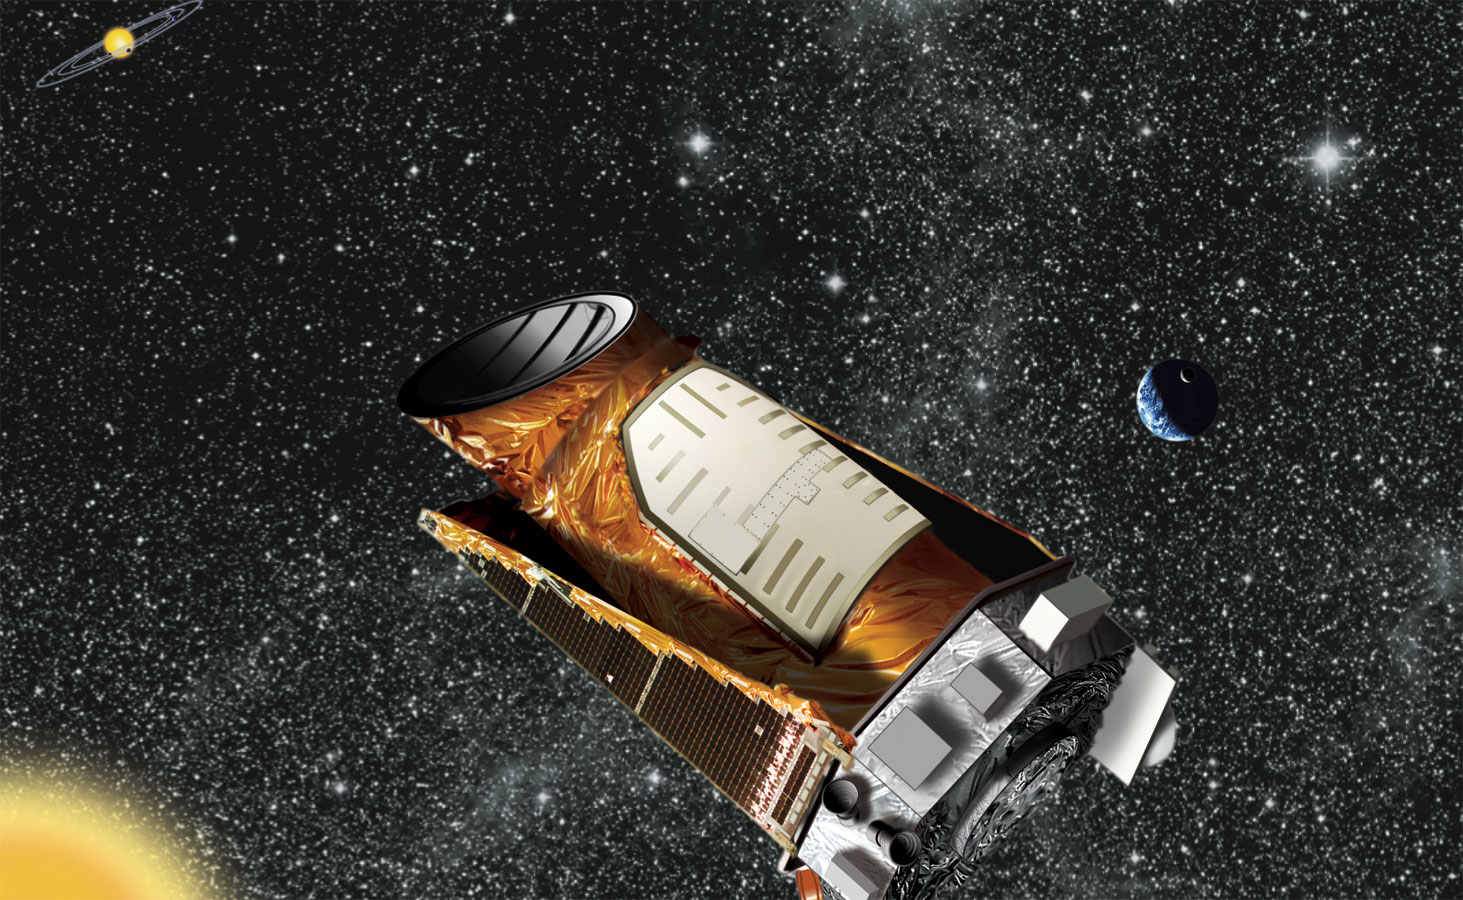 Kepler Space Telescope Videos at ABC News Video Archive at abcnews.com